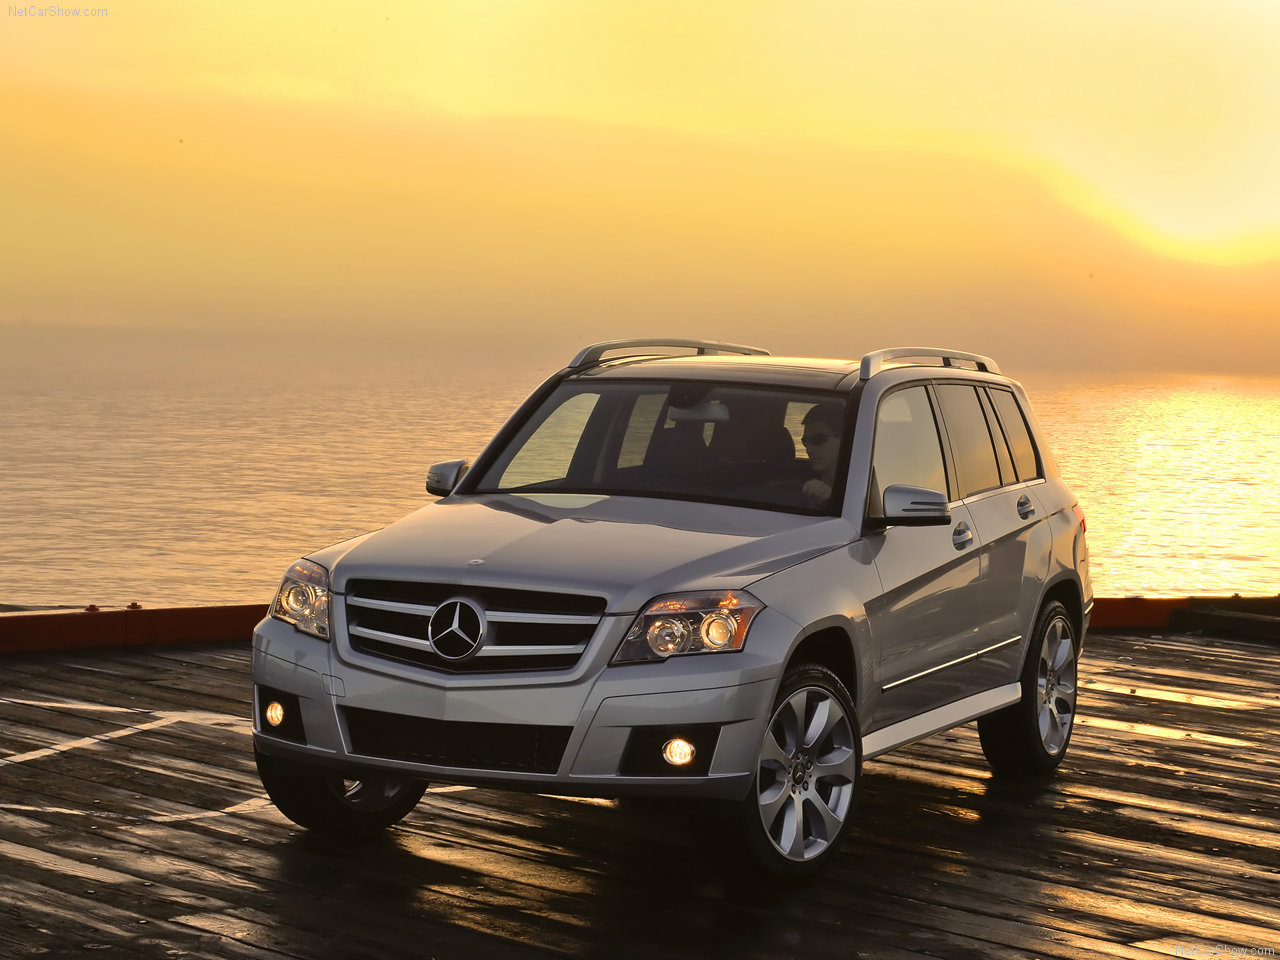 2010 mercedes benz glk 350 4matic mercedes benz cars for 2010 mercedes benz glk